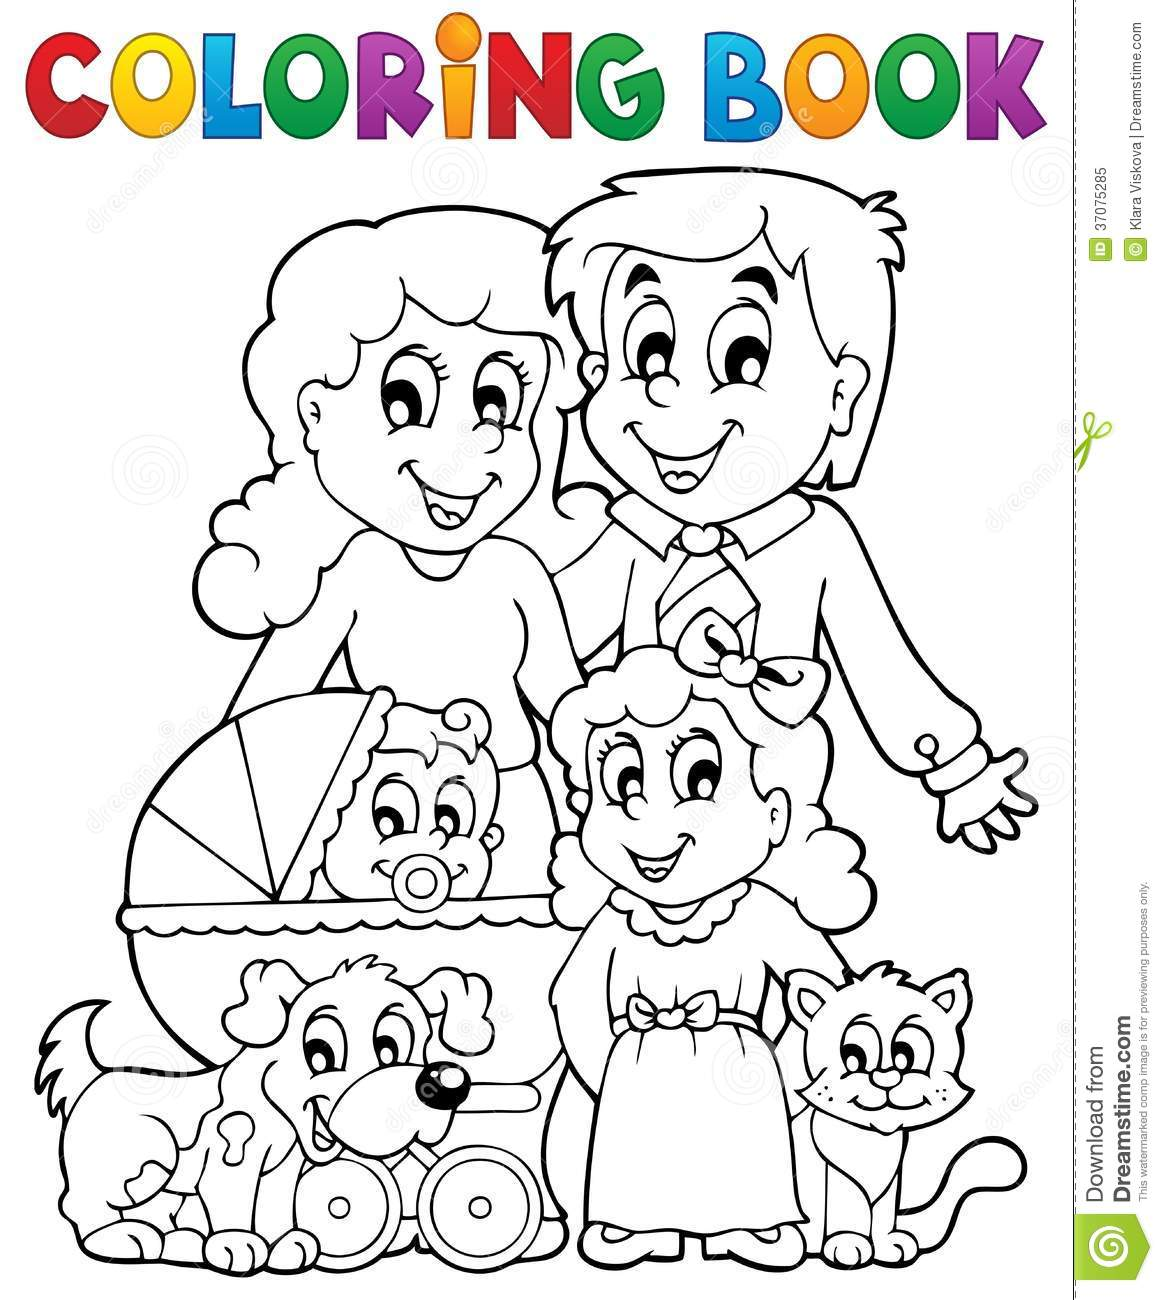 Interactive Coloring Pages - Printable Color Book Sheets Family coloring pictures for kids